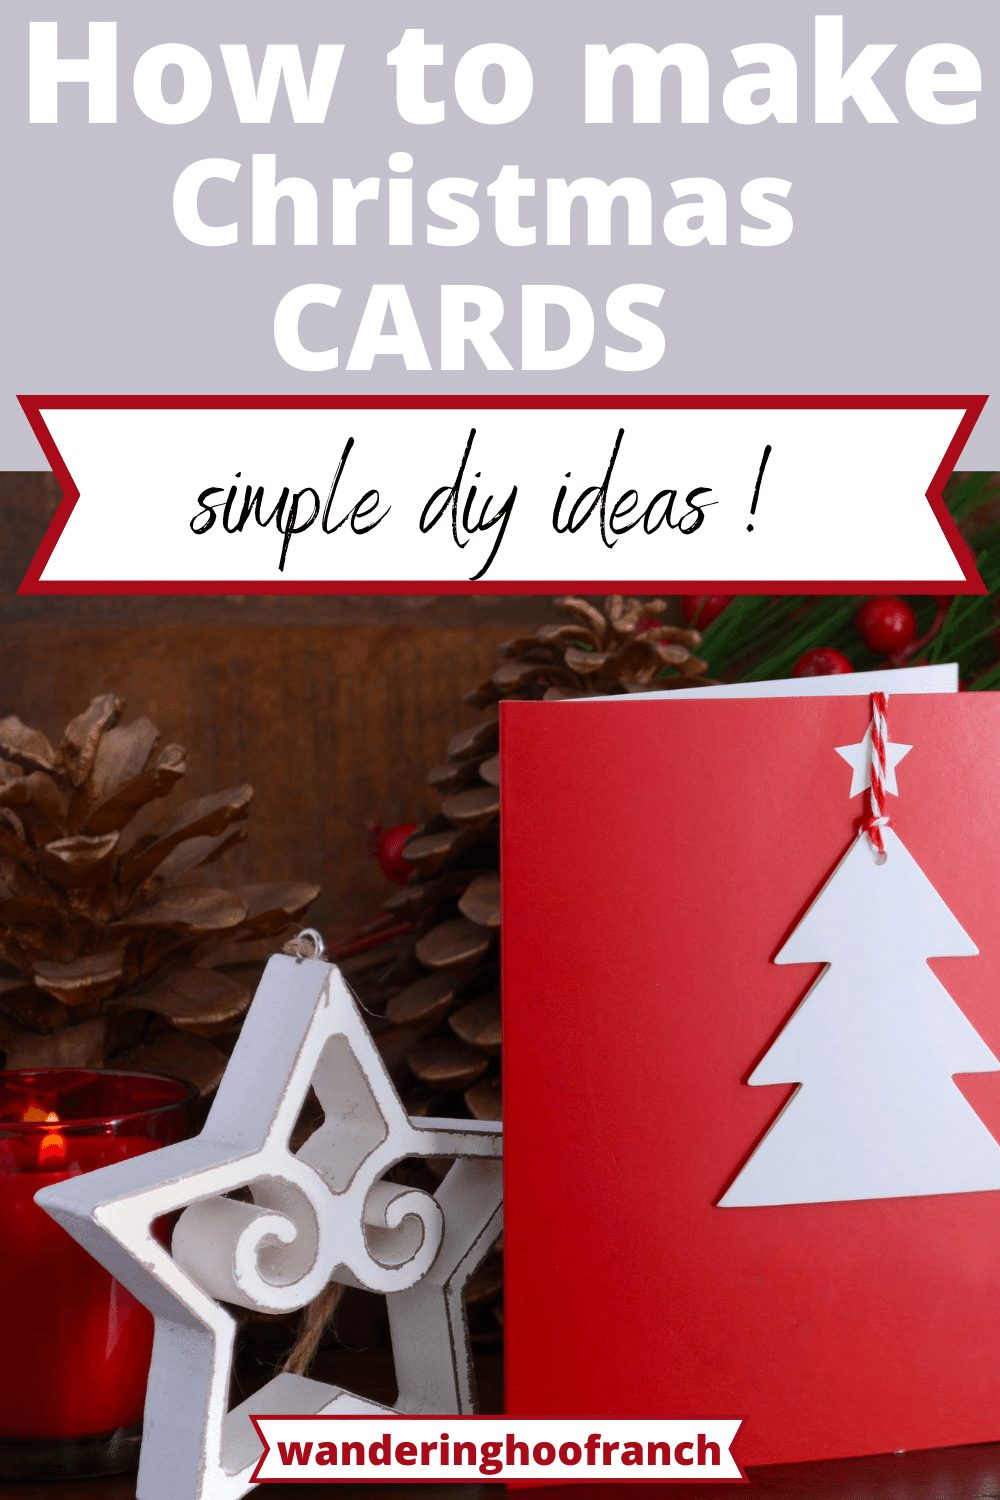 how to make Christmas cards simple diy ideas pin image